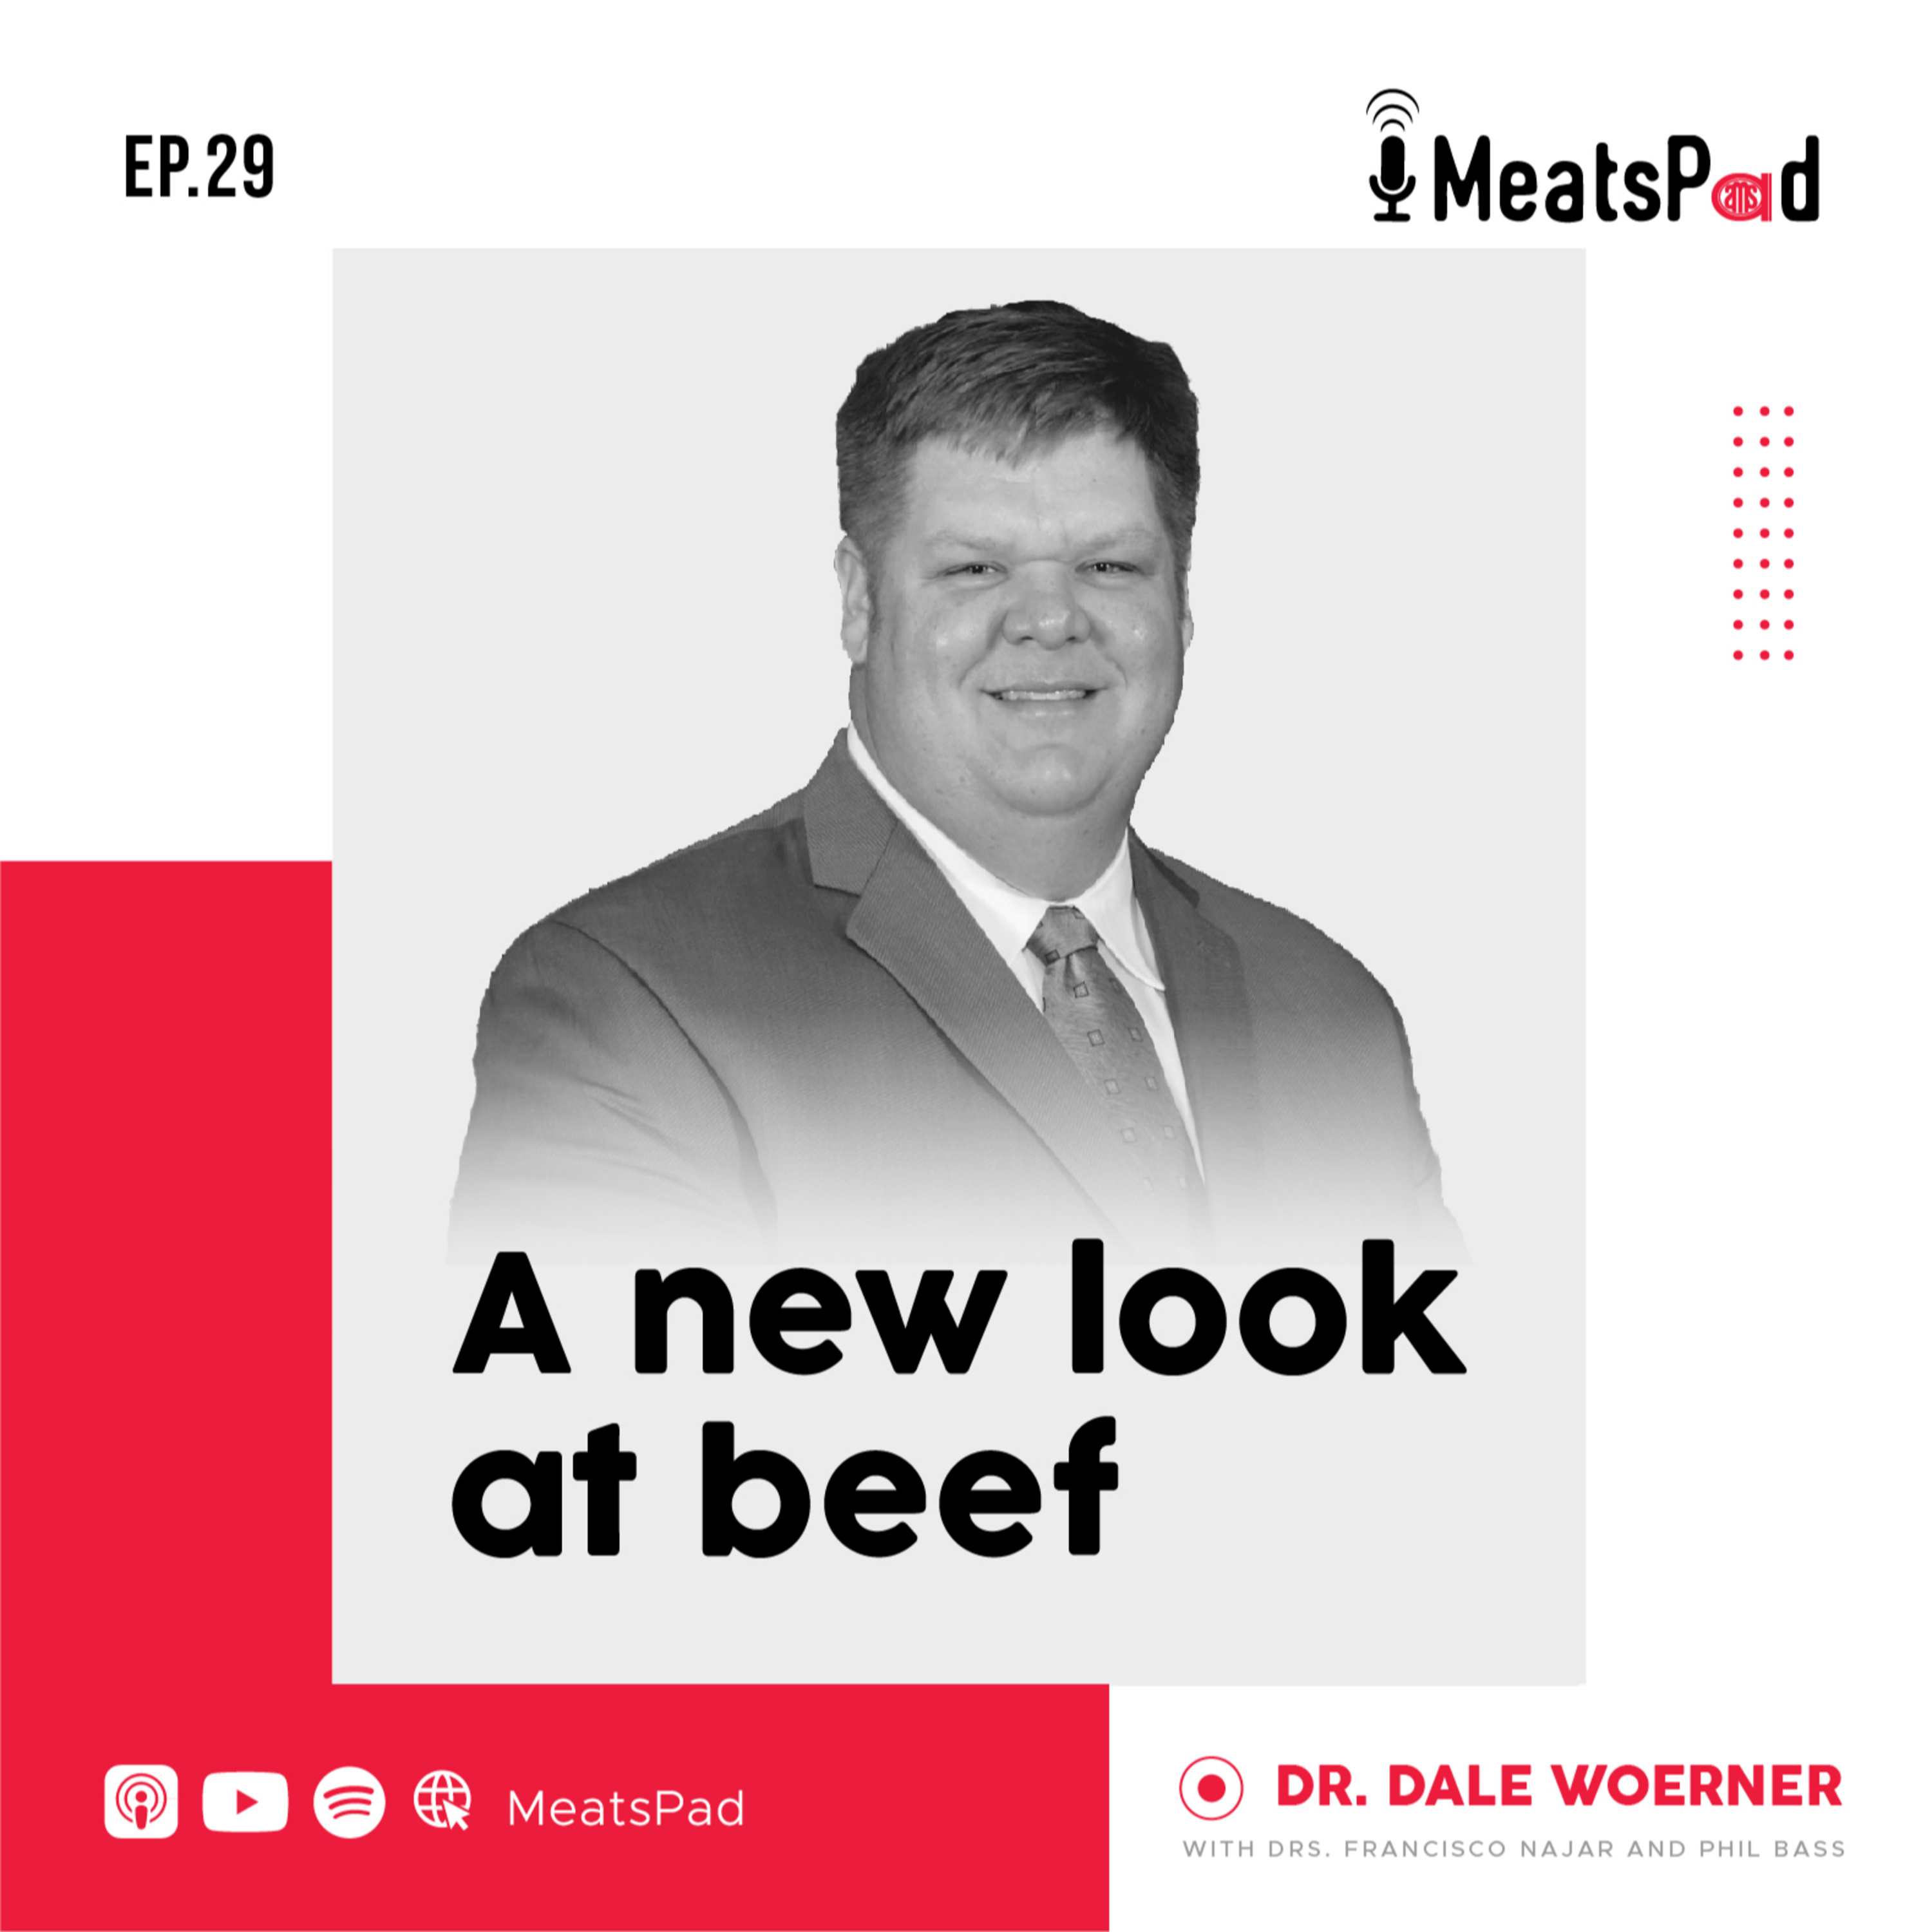 A new look at beef – Dr. Dale Woerner